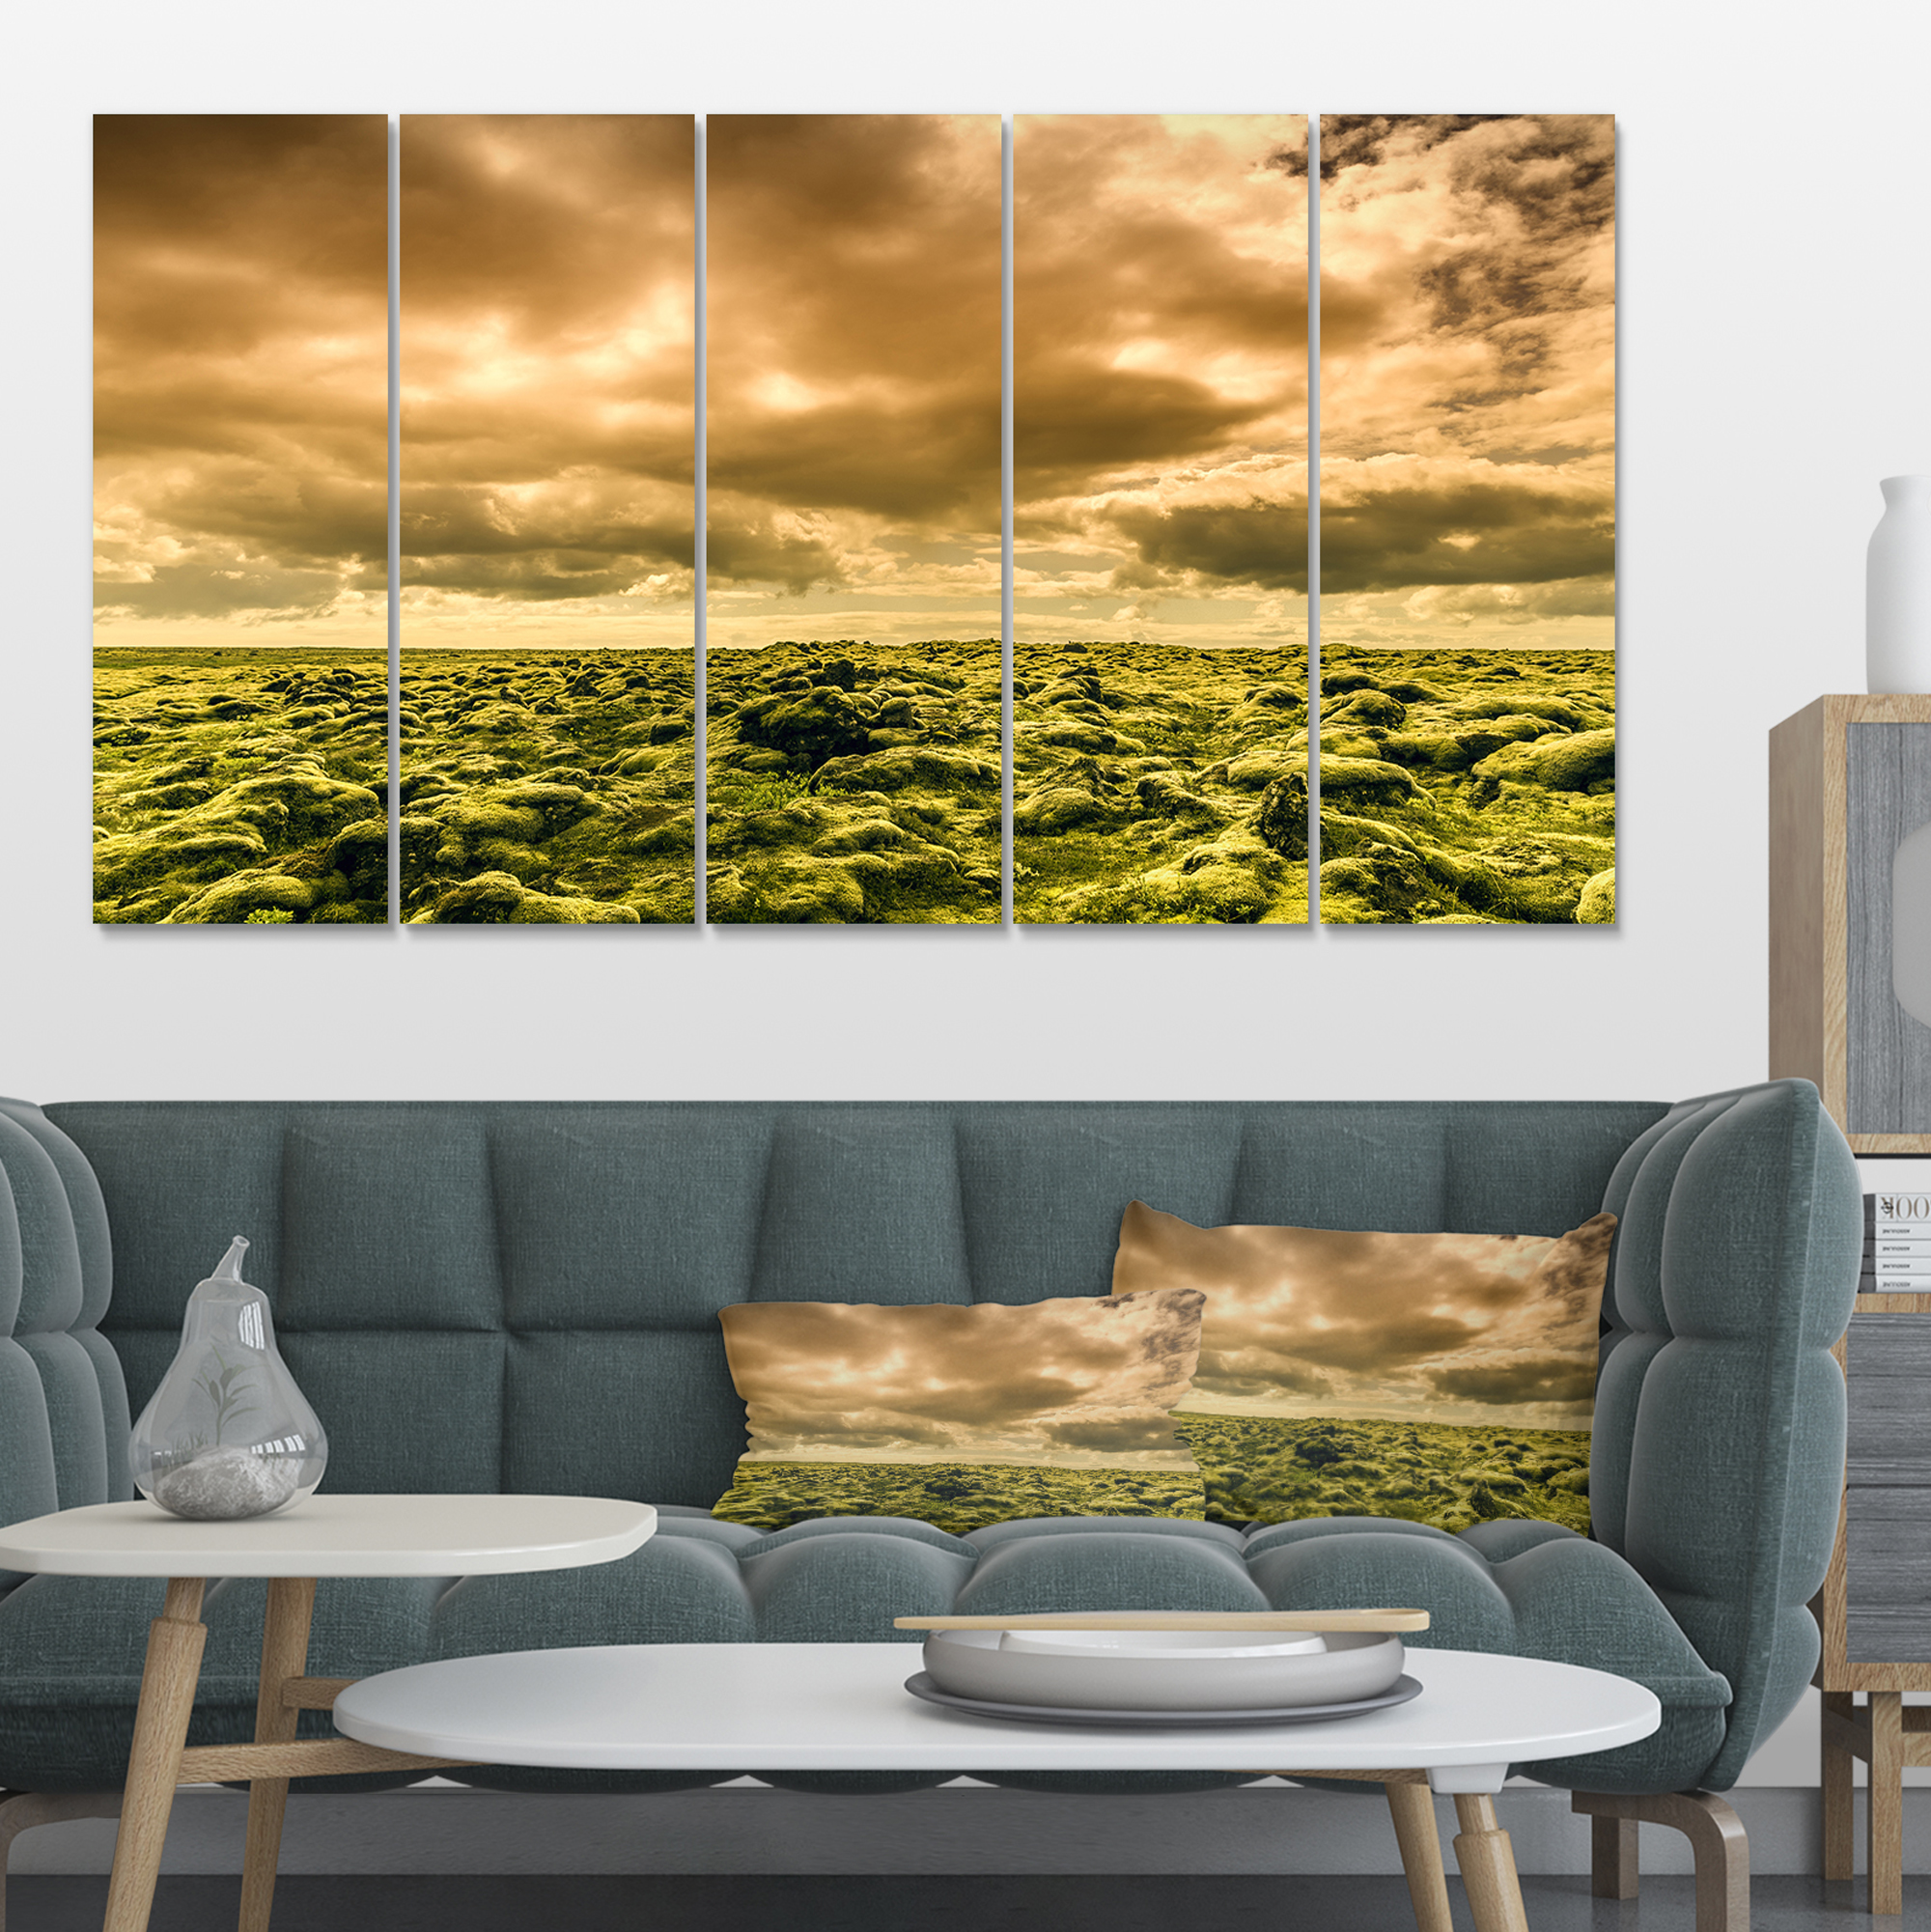 Beautiful View of Sky and Moss - Large Landscape Canvas Art